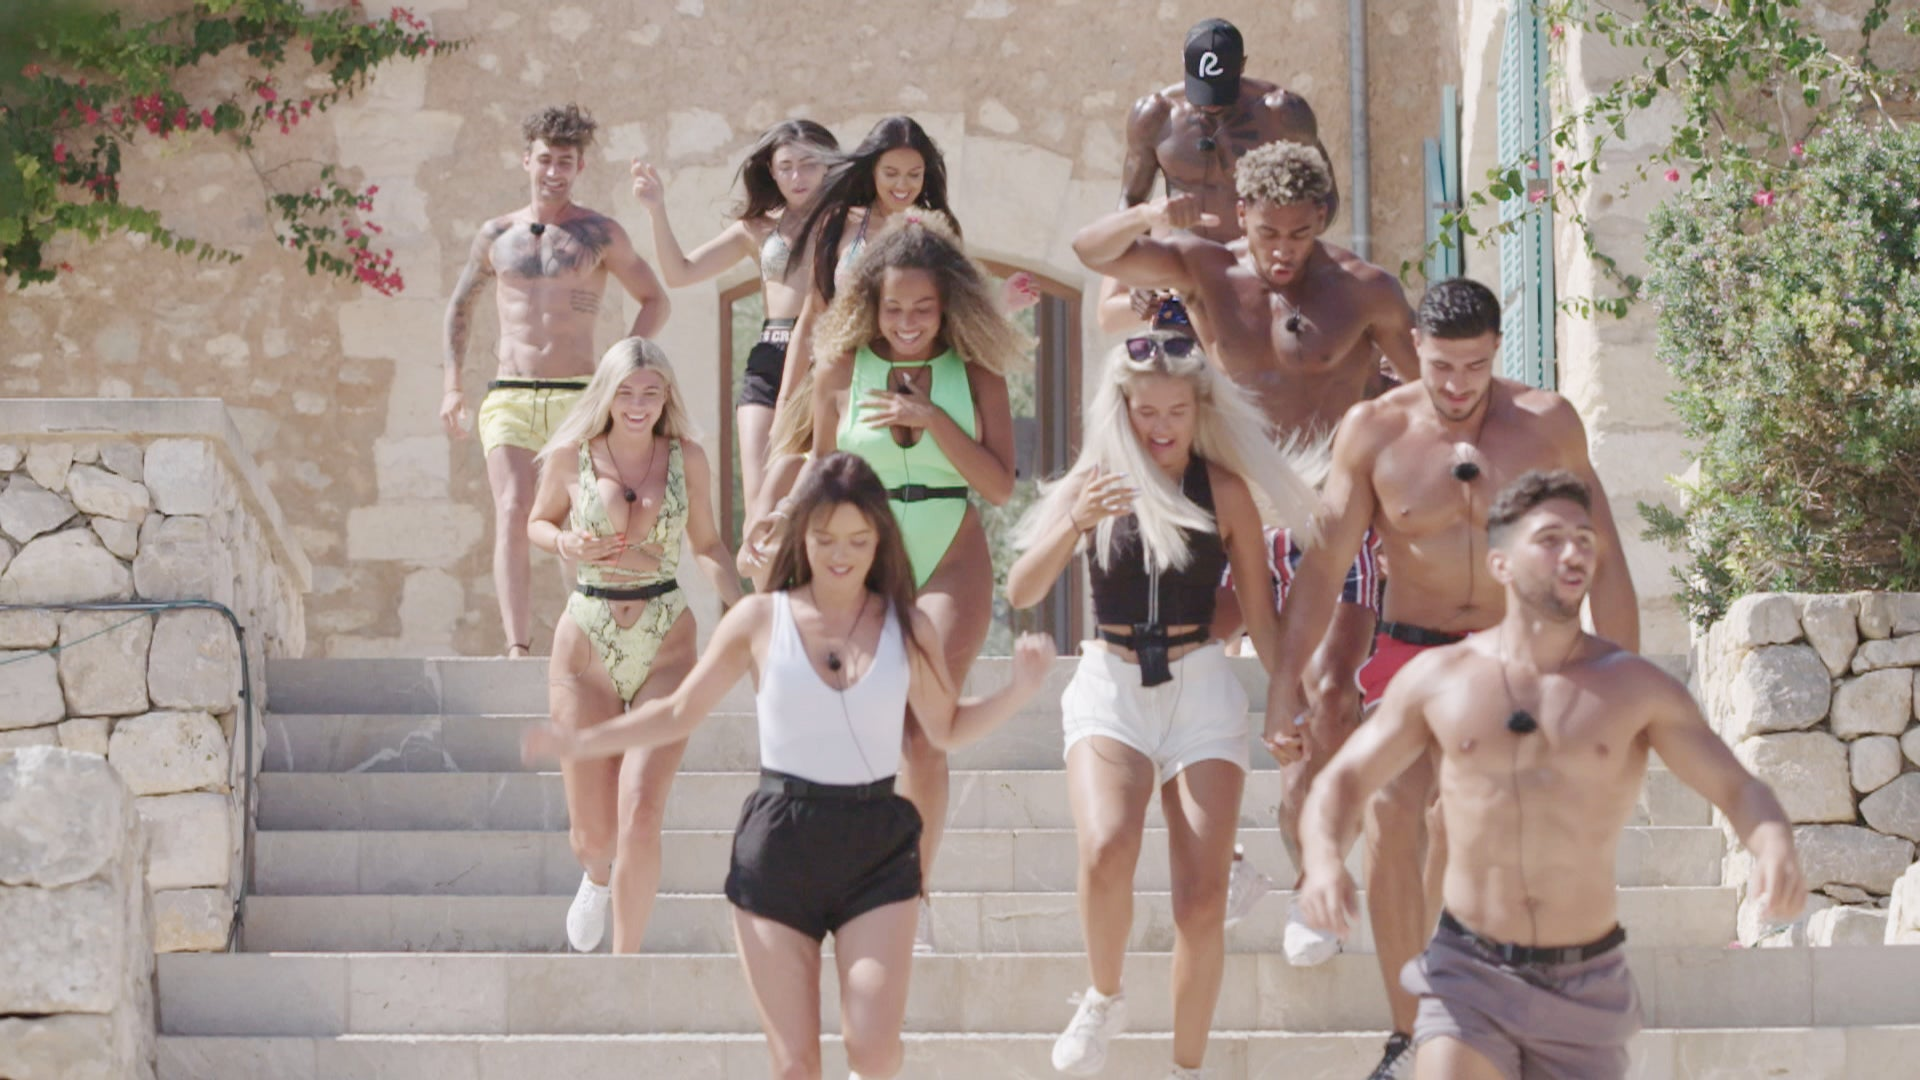 There may be little left to say about Love Island – but what does it say about us?